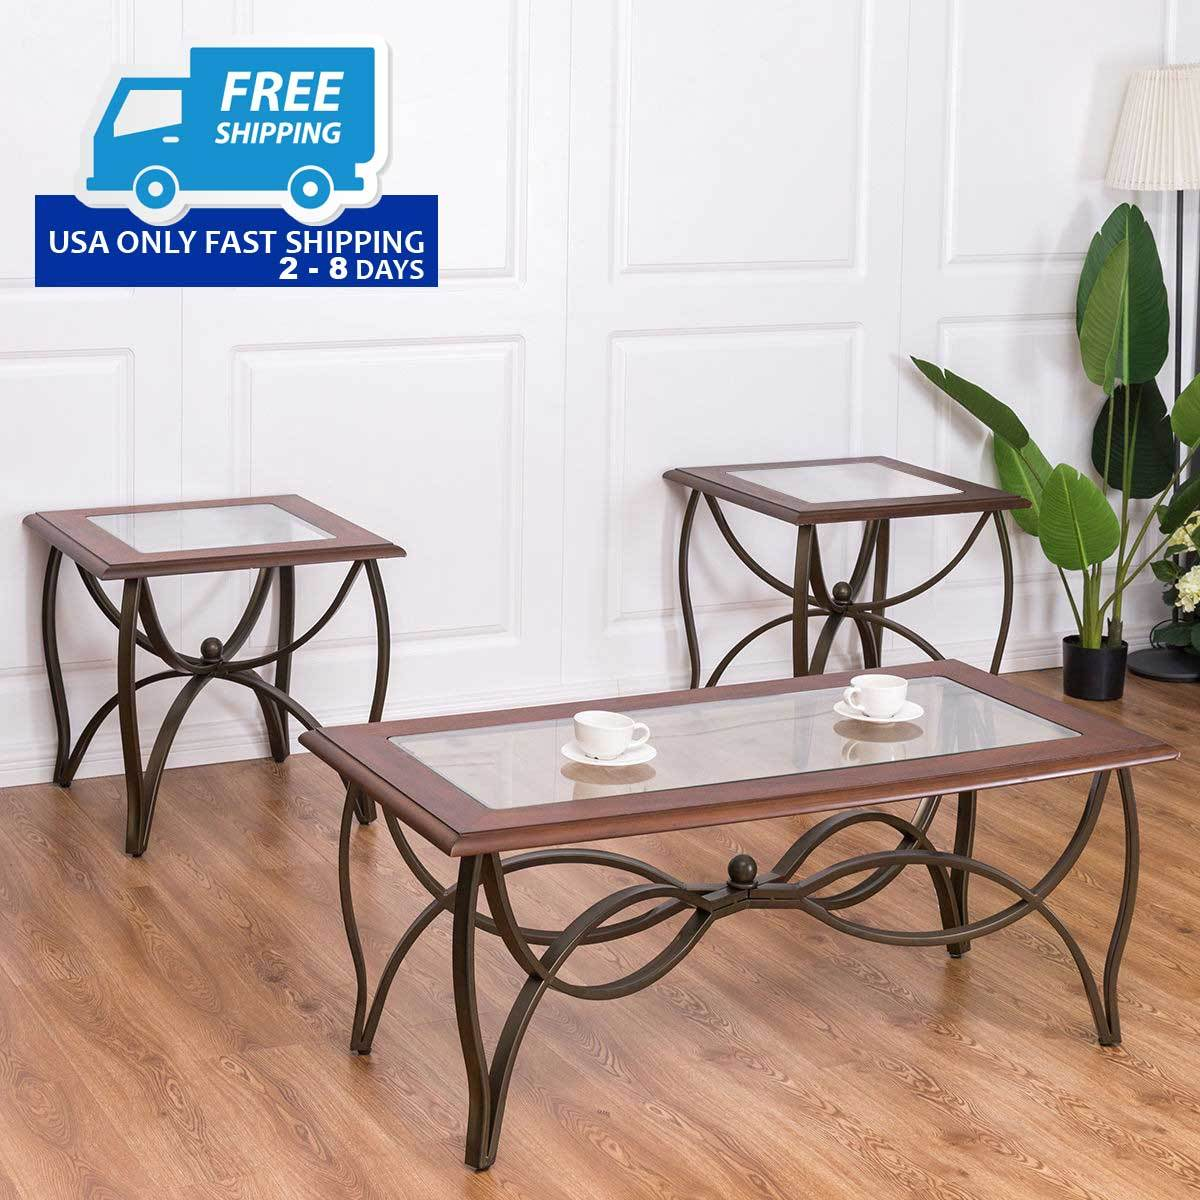 3 pcs Elegant Wood Glass Coffee Table Set & 3 pcs Elegant Wood Glass Coffee Table Set u2013 By Choice Products